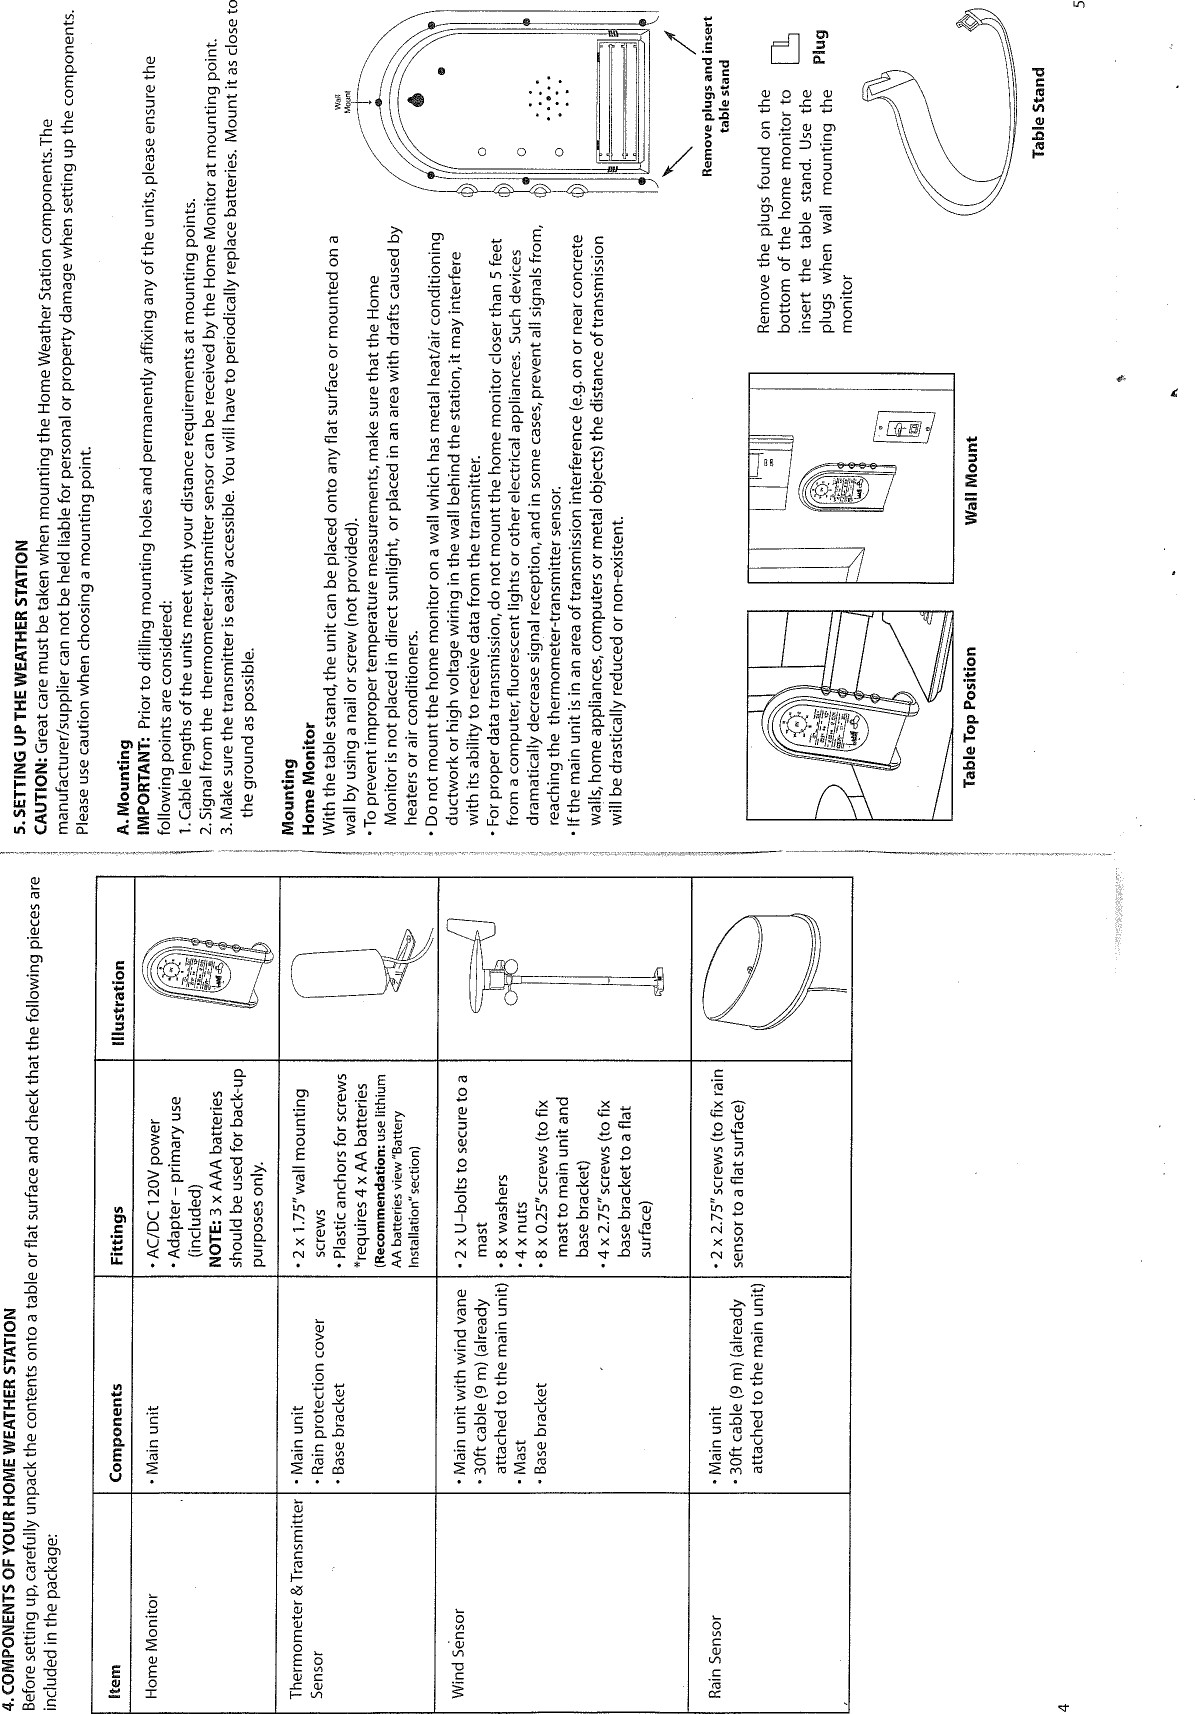 Gas Station Diagram Rv Park Wiring Library My Norton Dg941r Home Weather User Manual Users Of